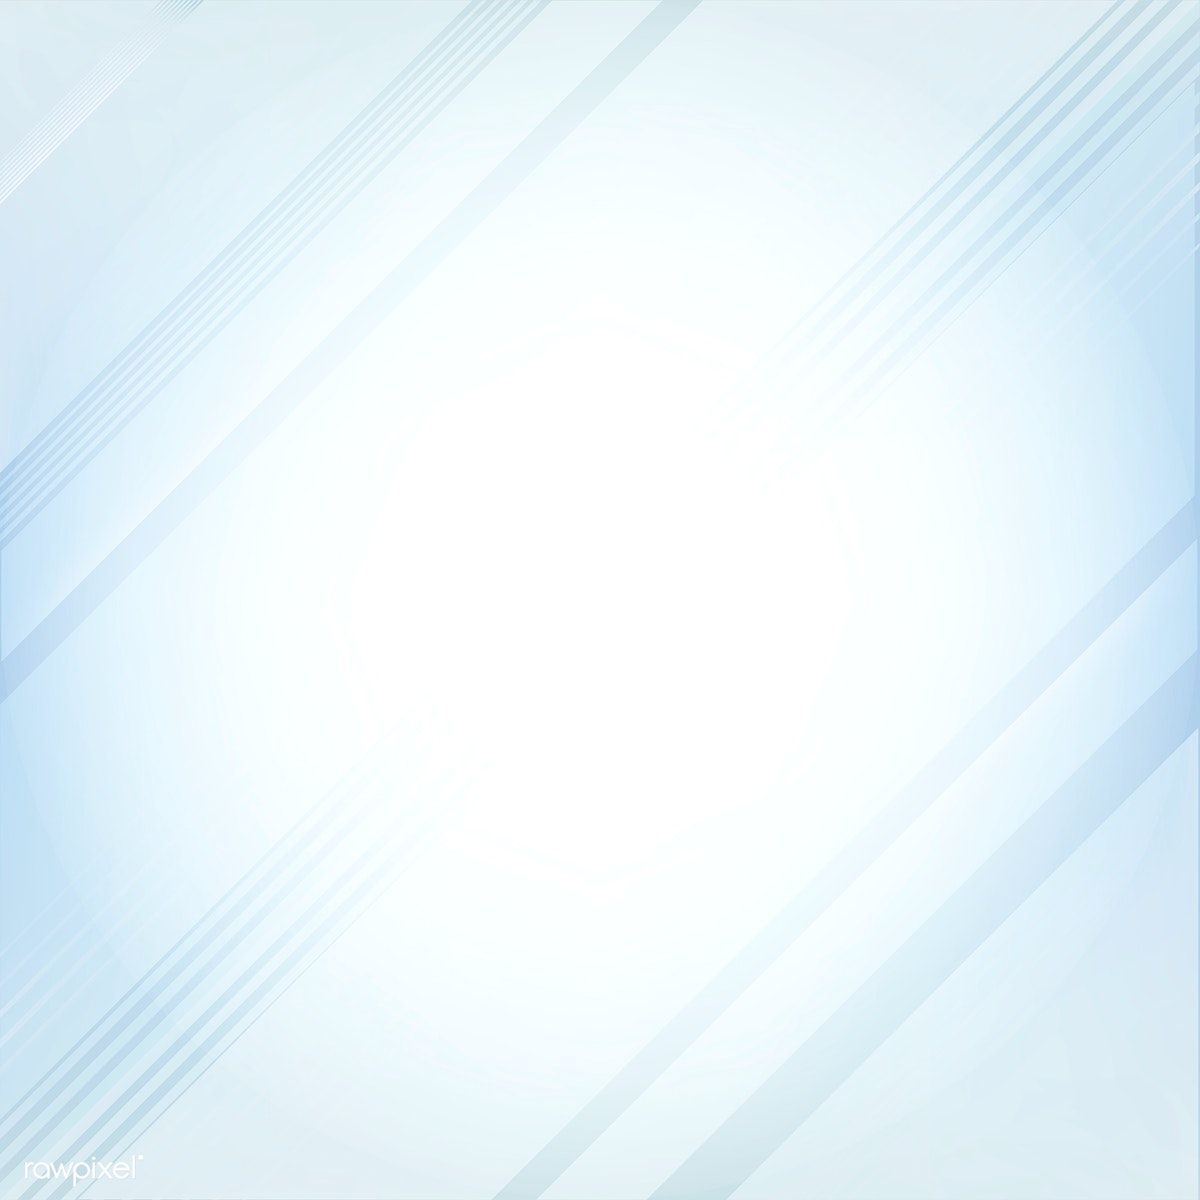 Blue And White Gradient Abstract Background Free Image By Rawpixel Com Kappy Kappy Abstract Backgrounds Abstract Background